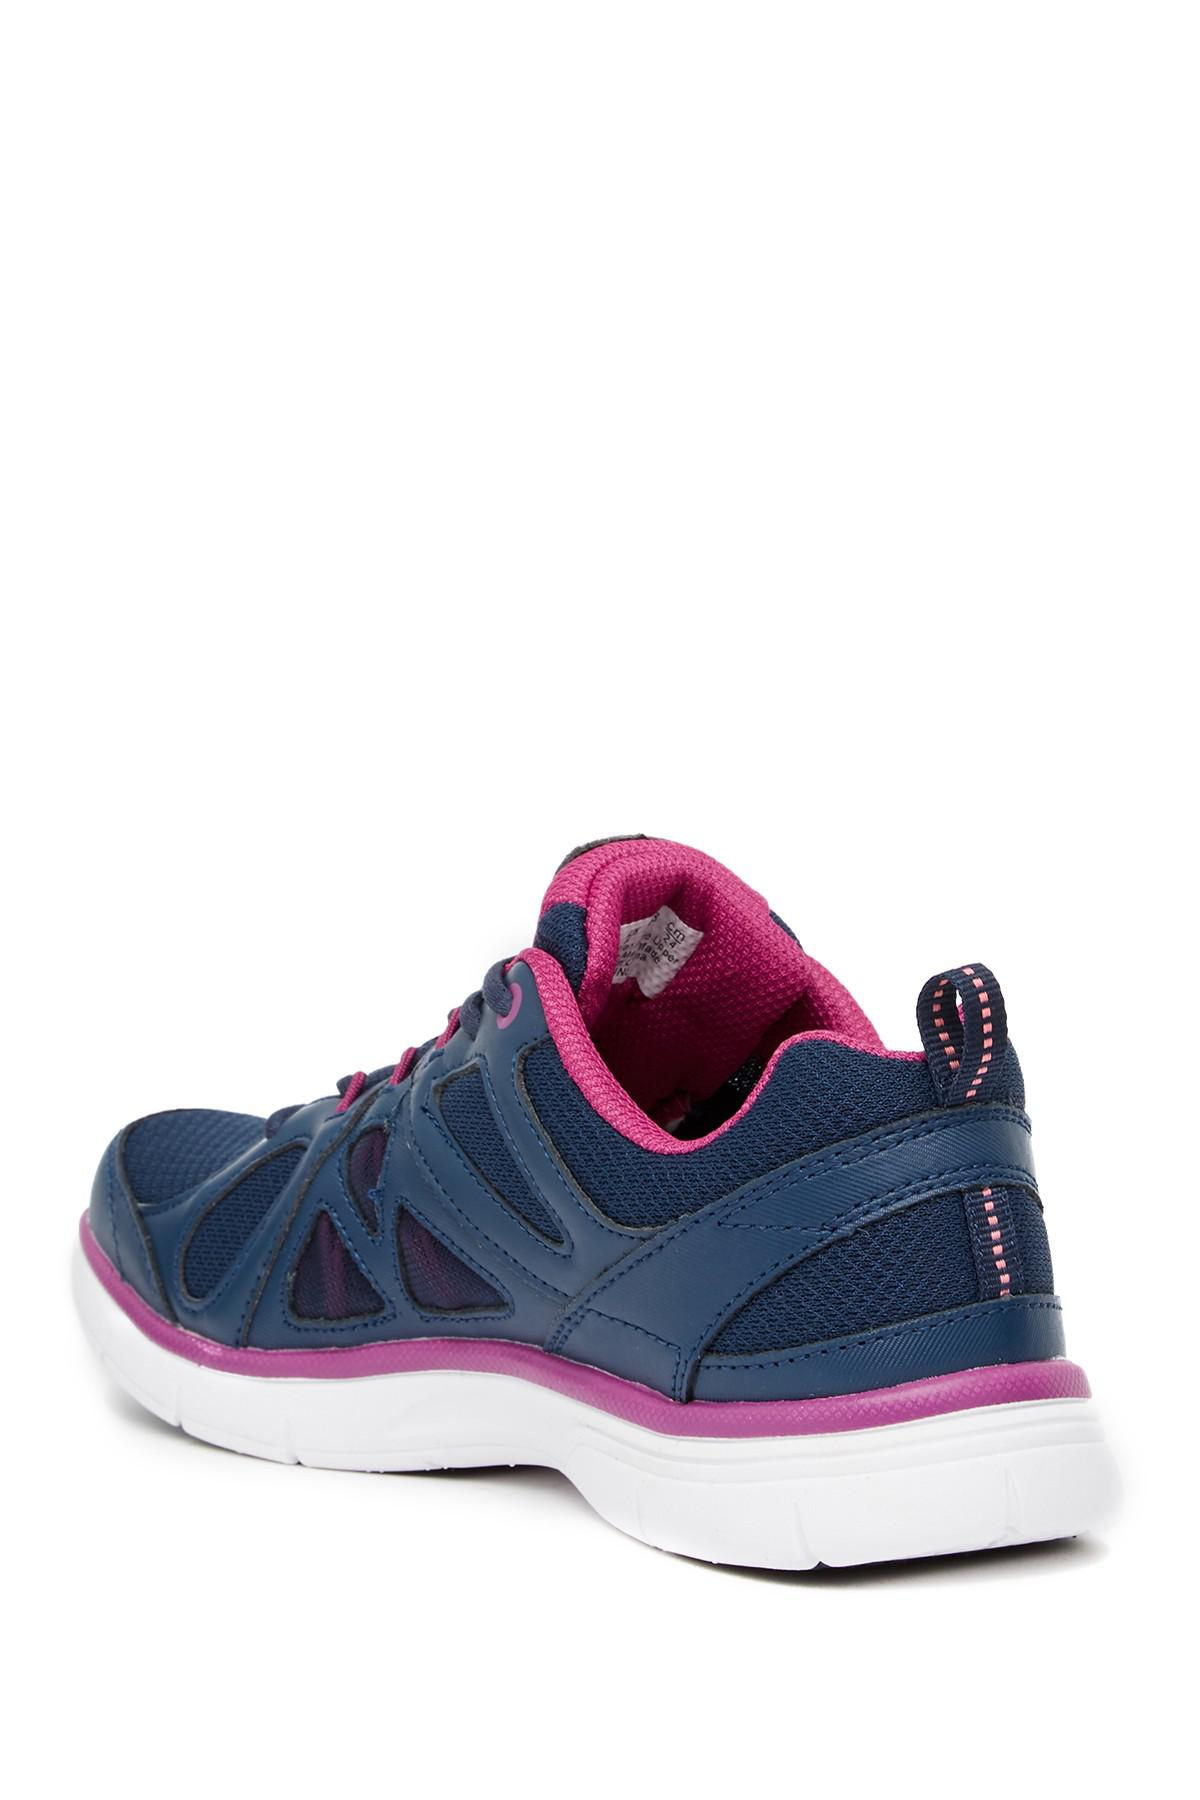 Ryka Divine Athletic Sneaker - Wide Width Available k92aH